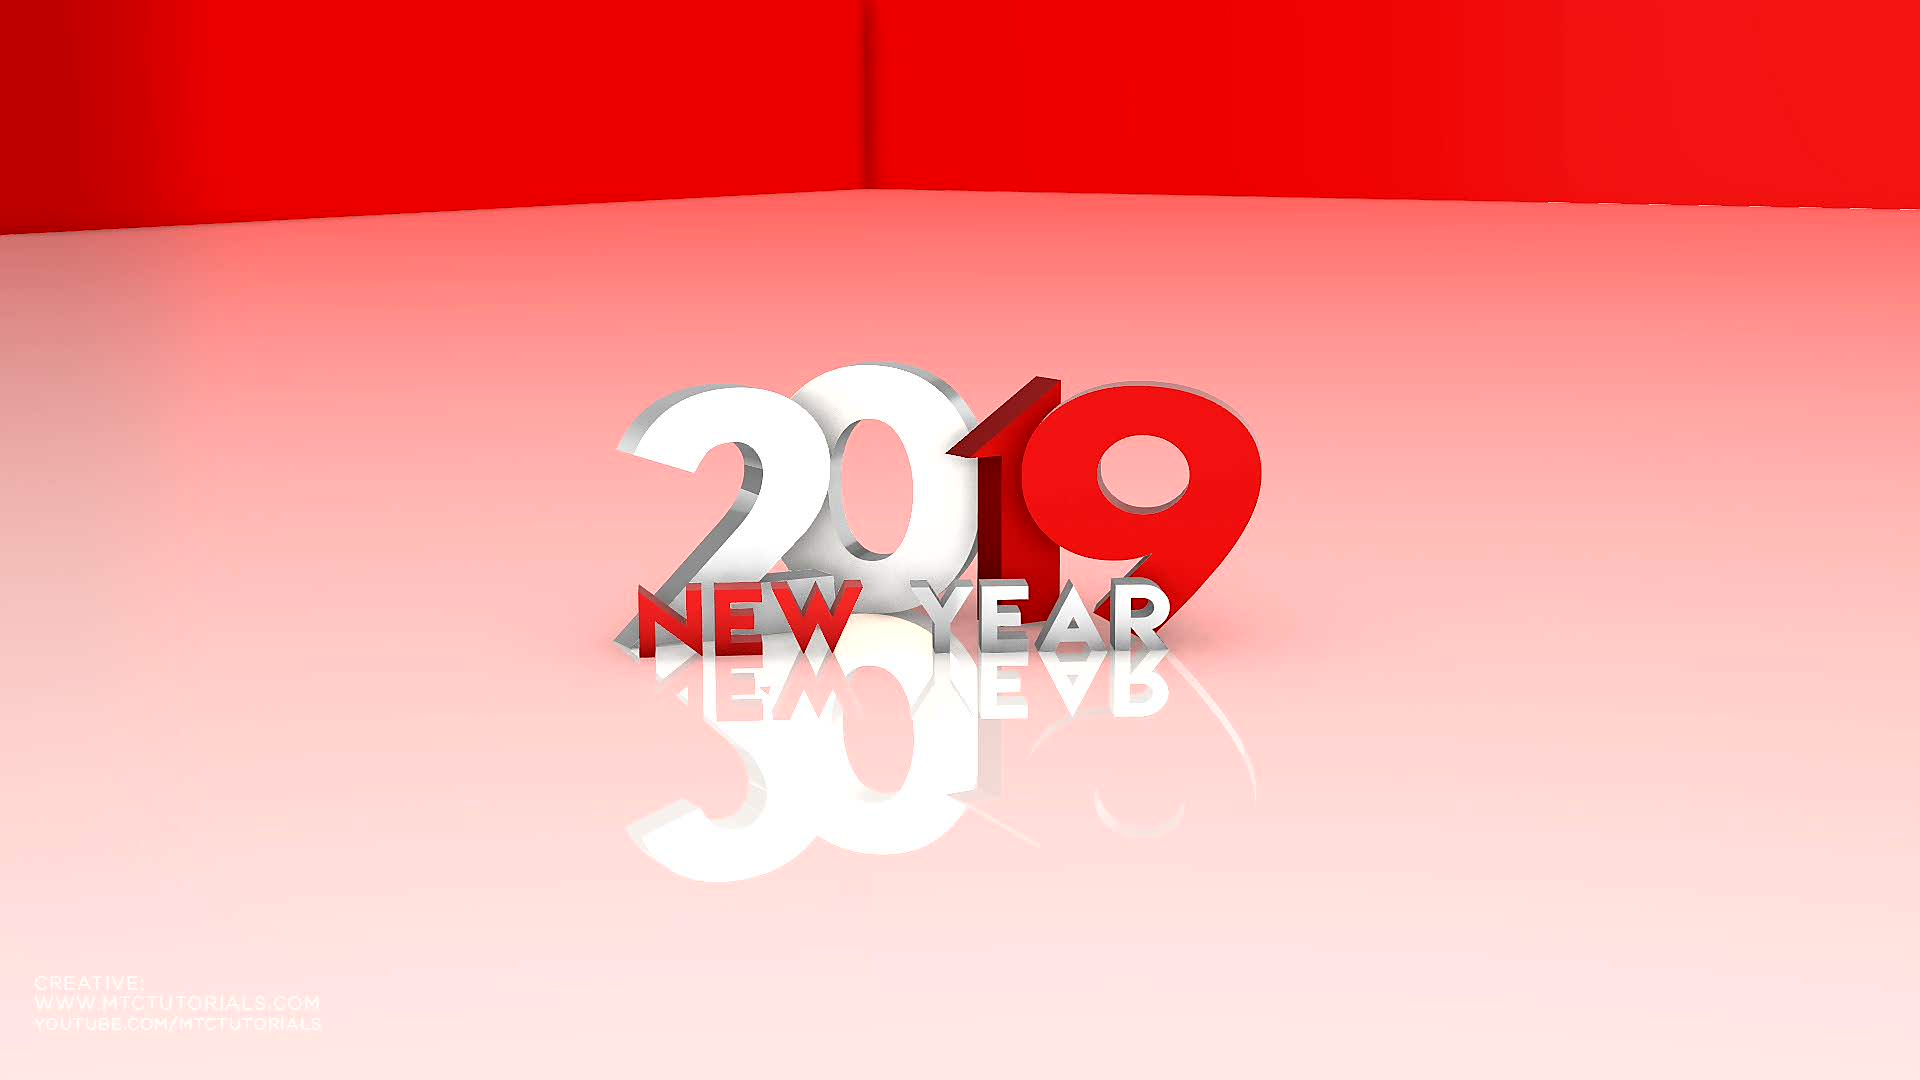 Happy New Year Free Stock Images